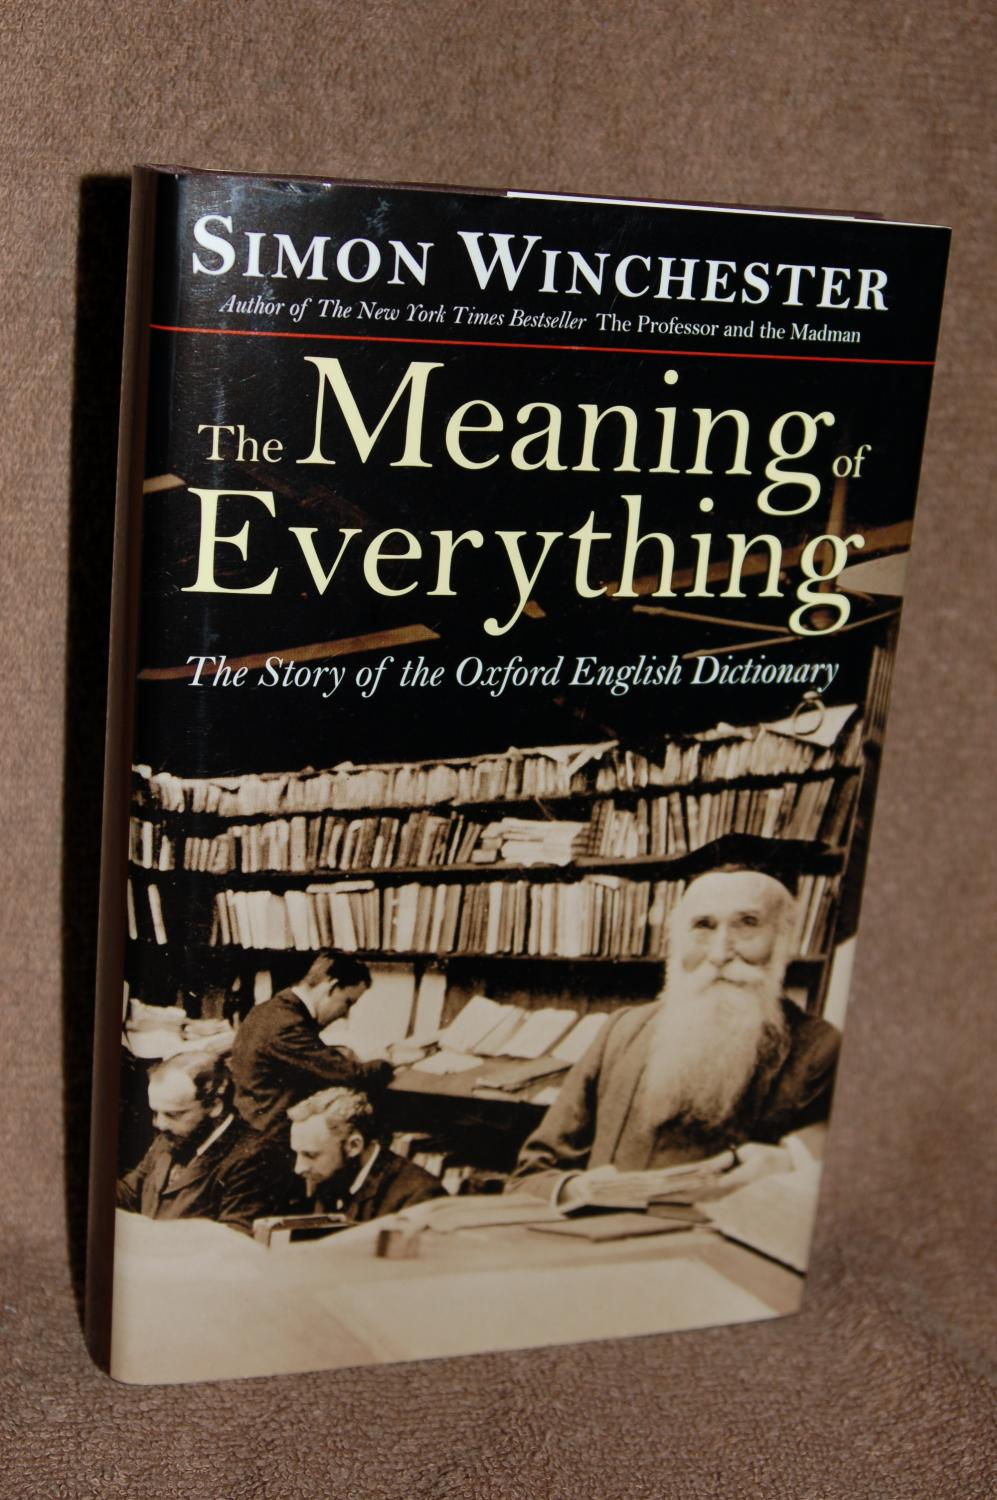 The Story of the Oxford English Dictionary The Meaning of Everything